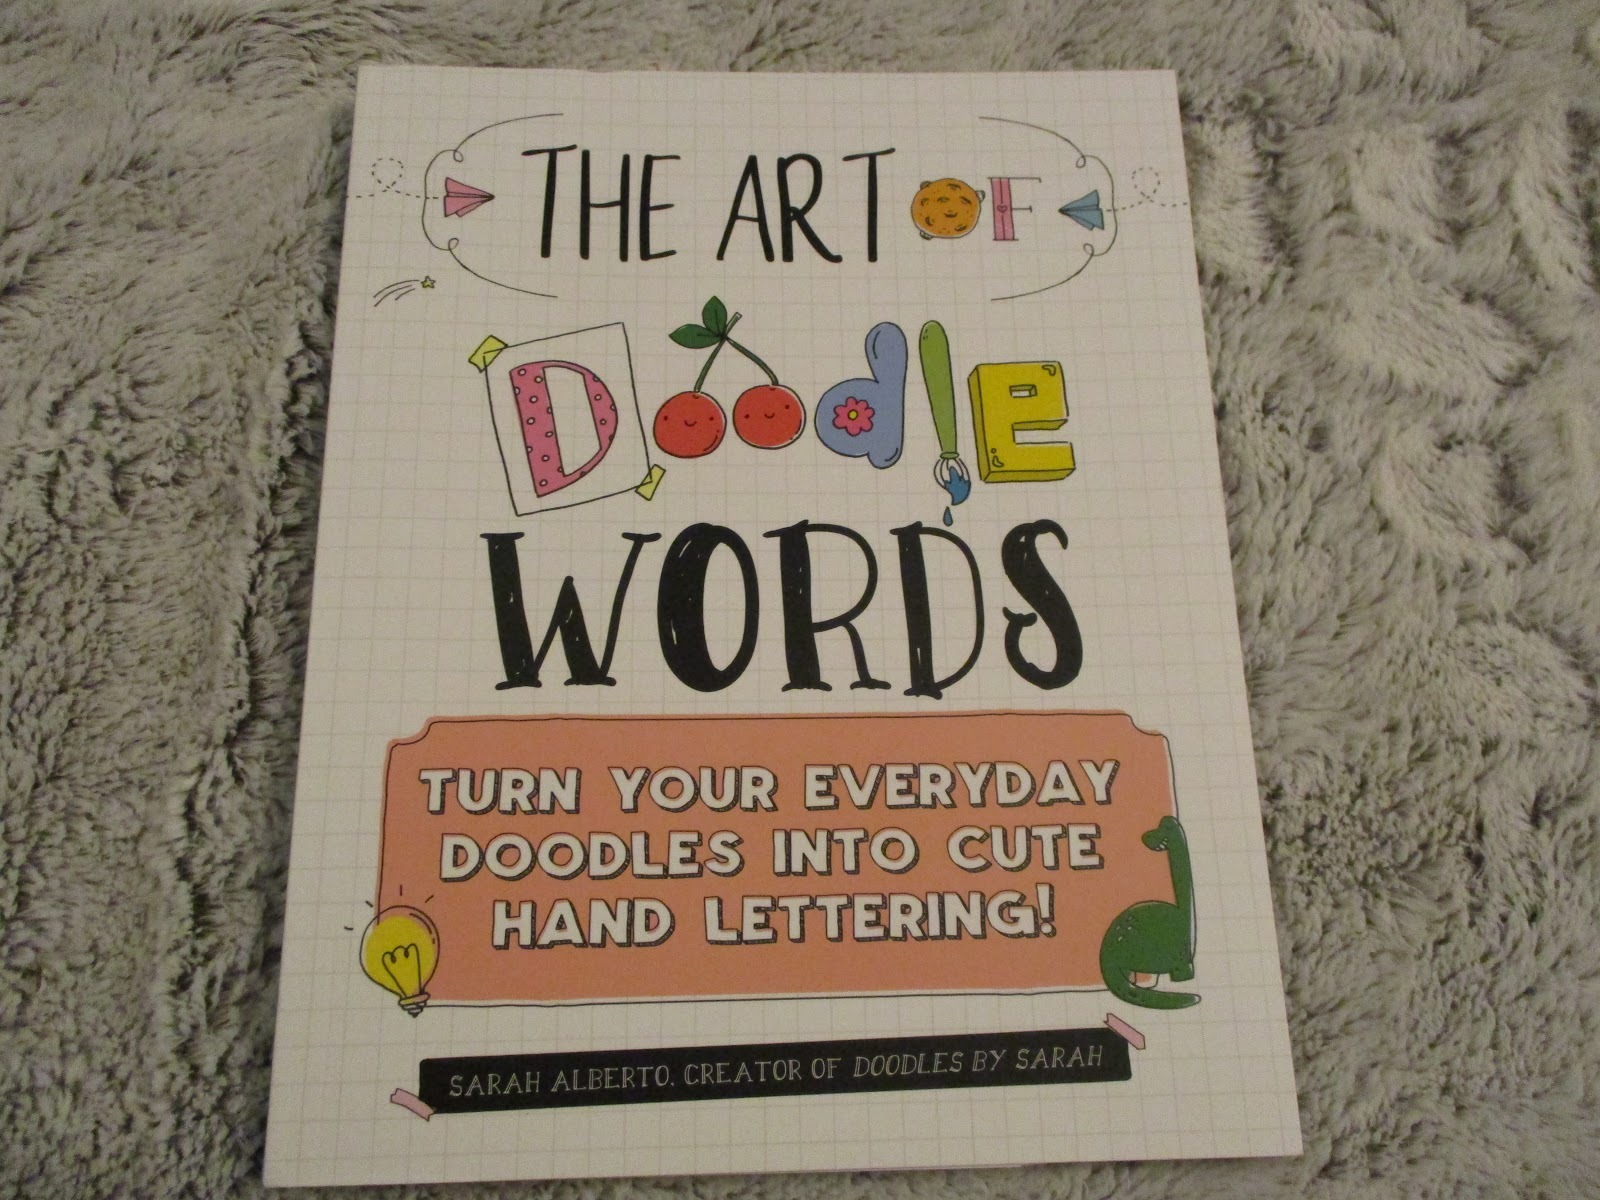 The Art of Doodle Words Turns Your Everyday Doodle into Cute Hand Lettering!  By Sarah Alberto and Illustrated by Sarah Alberto from Quarto Knows.